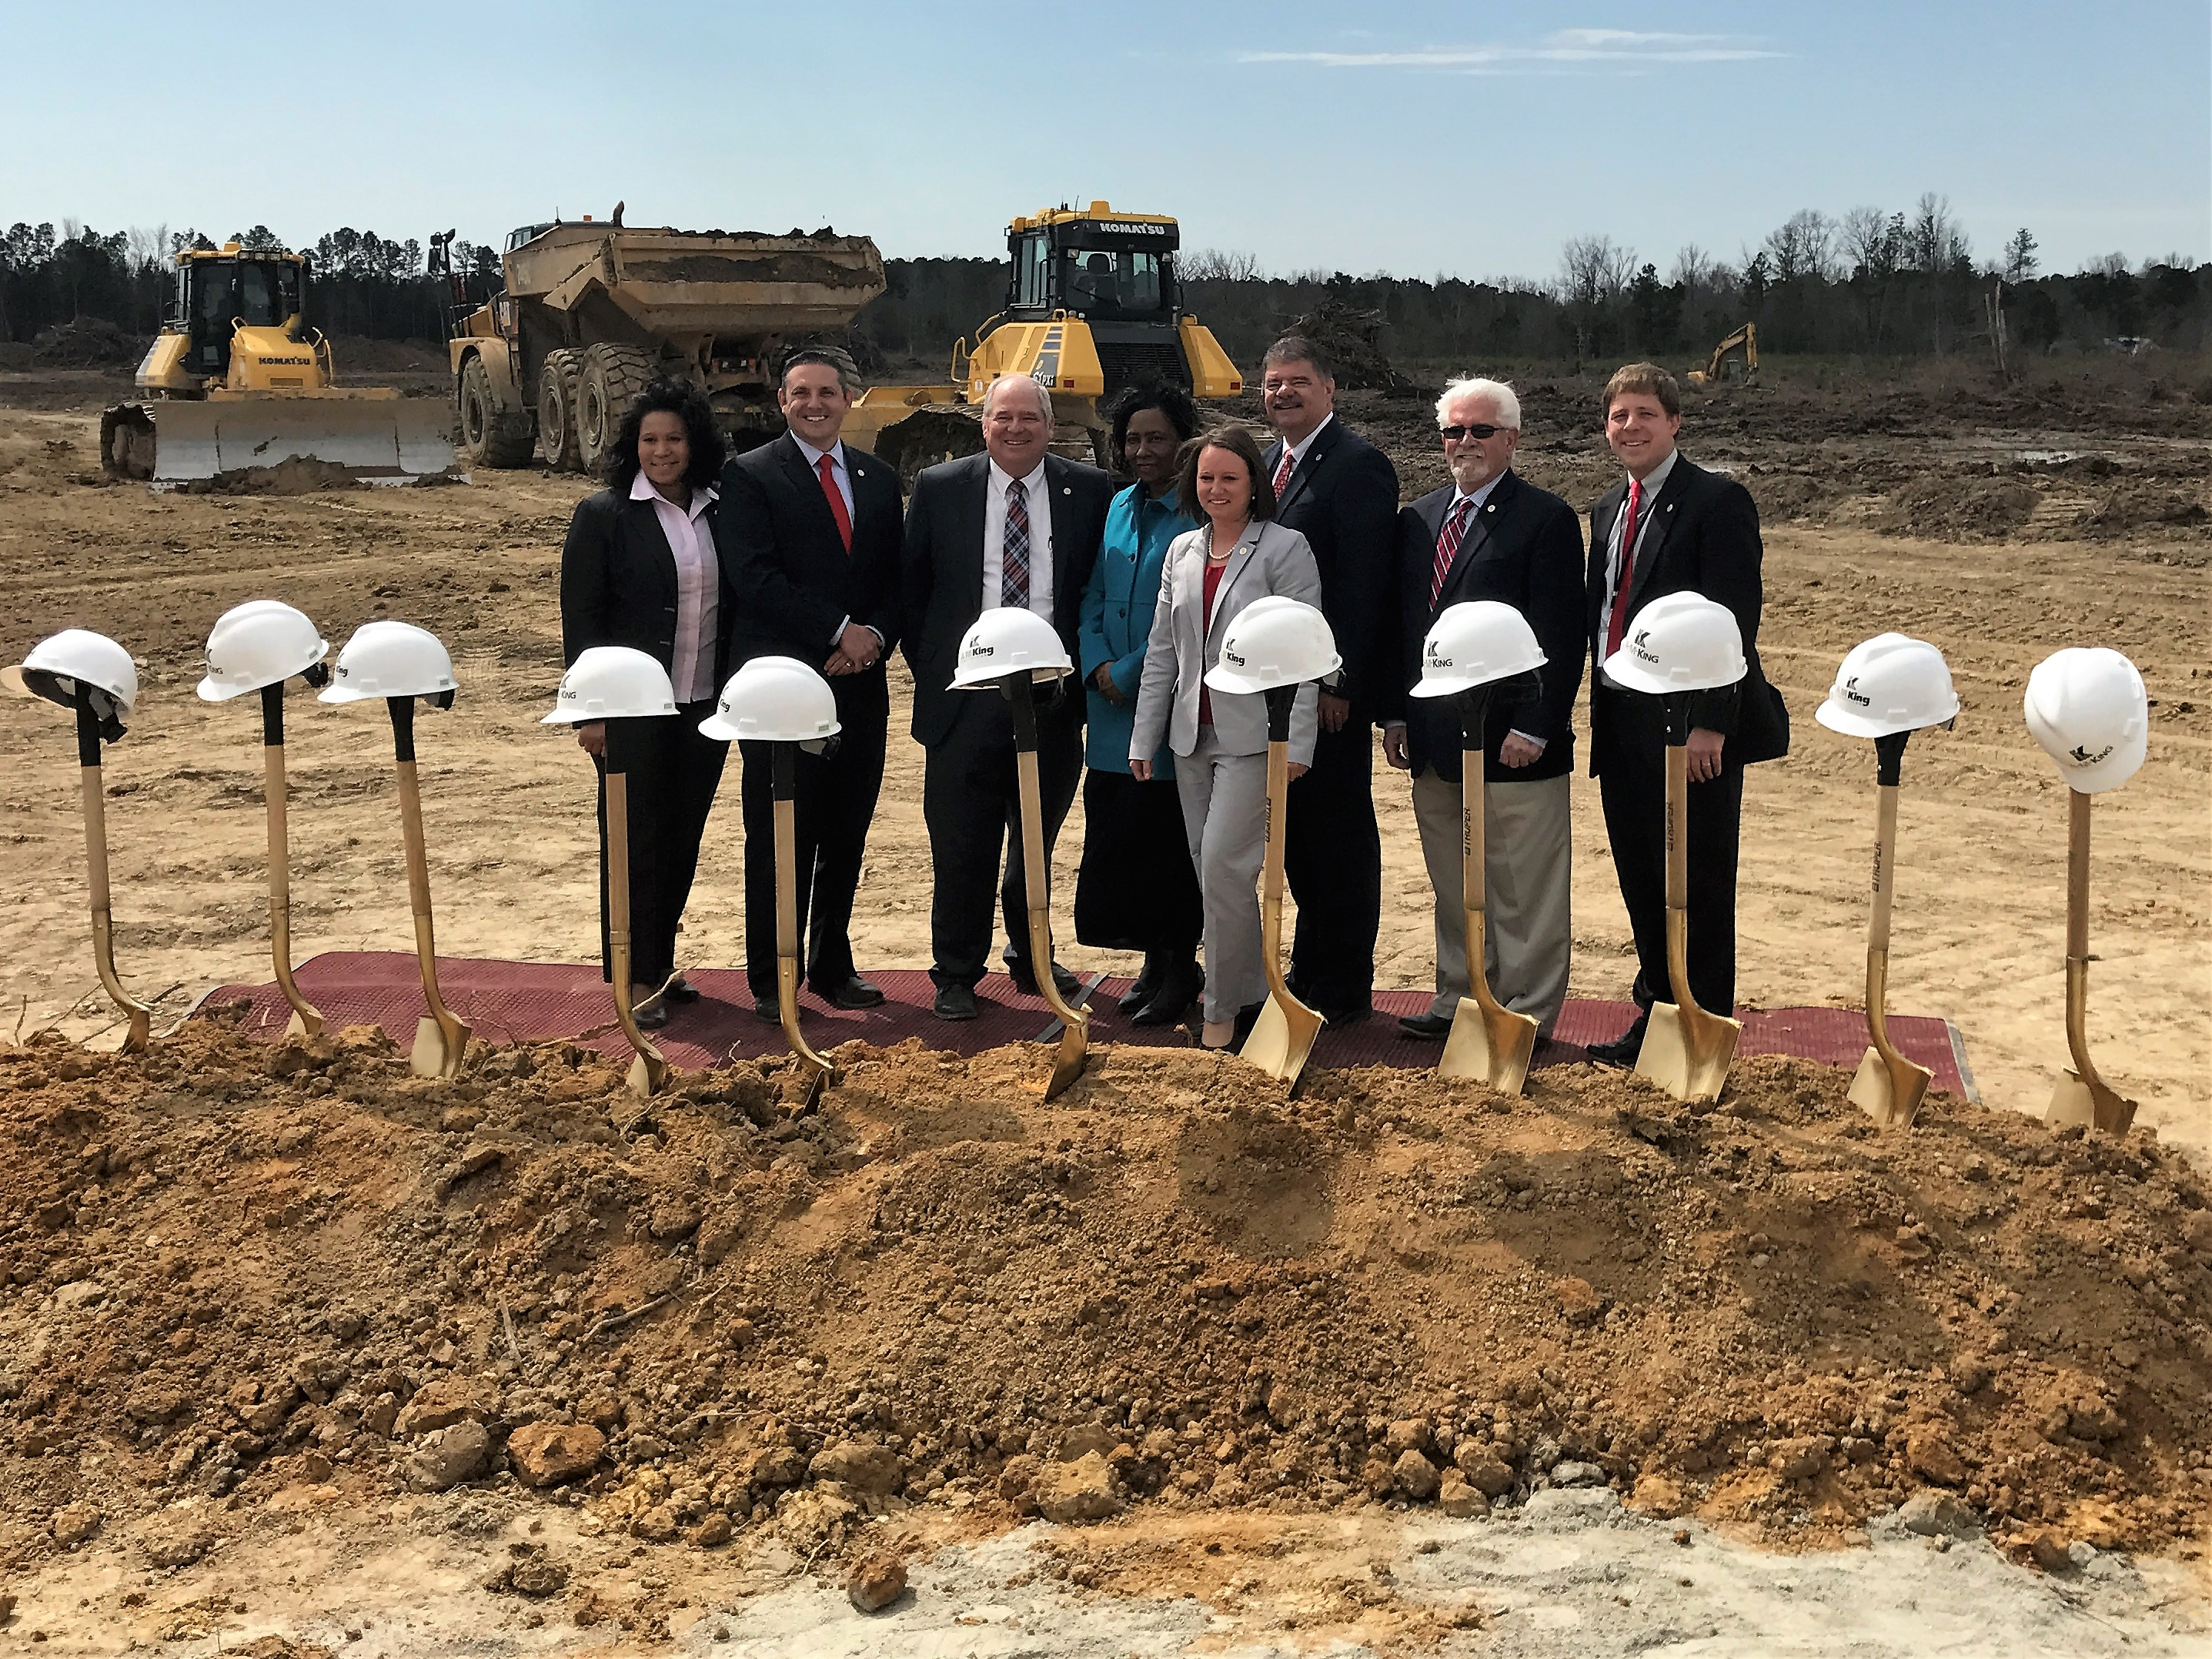 Image of board members behind shovels at a groundbreaking